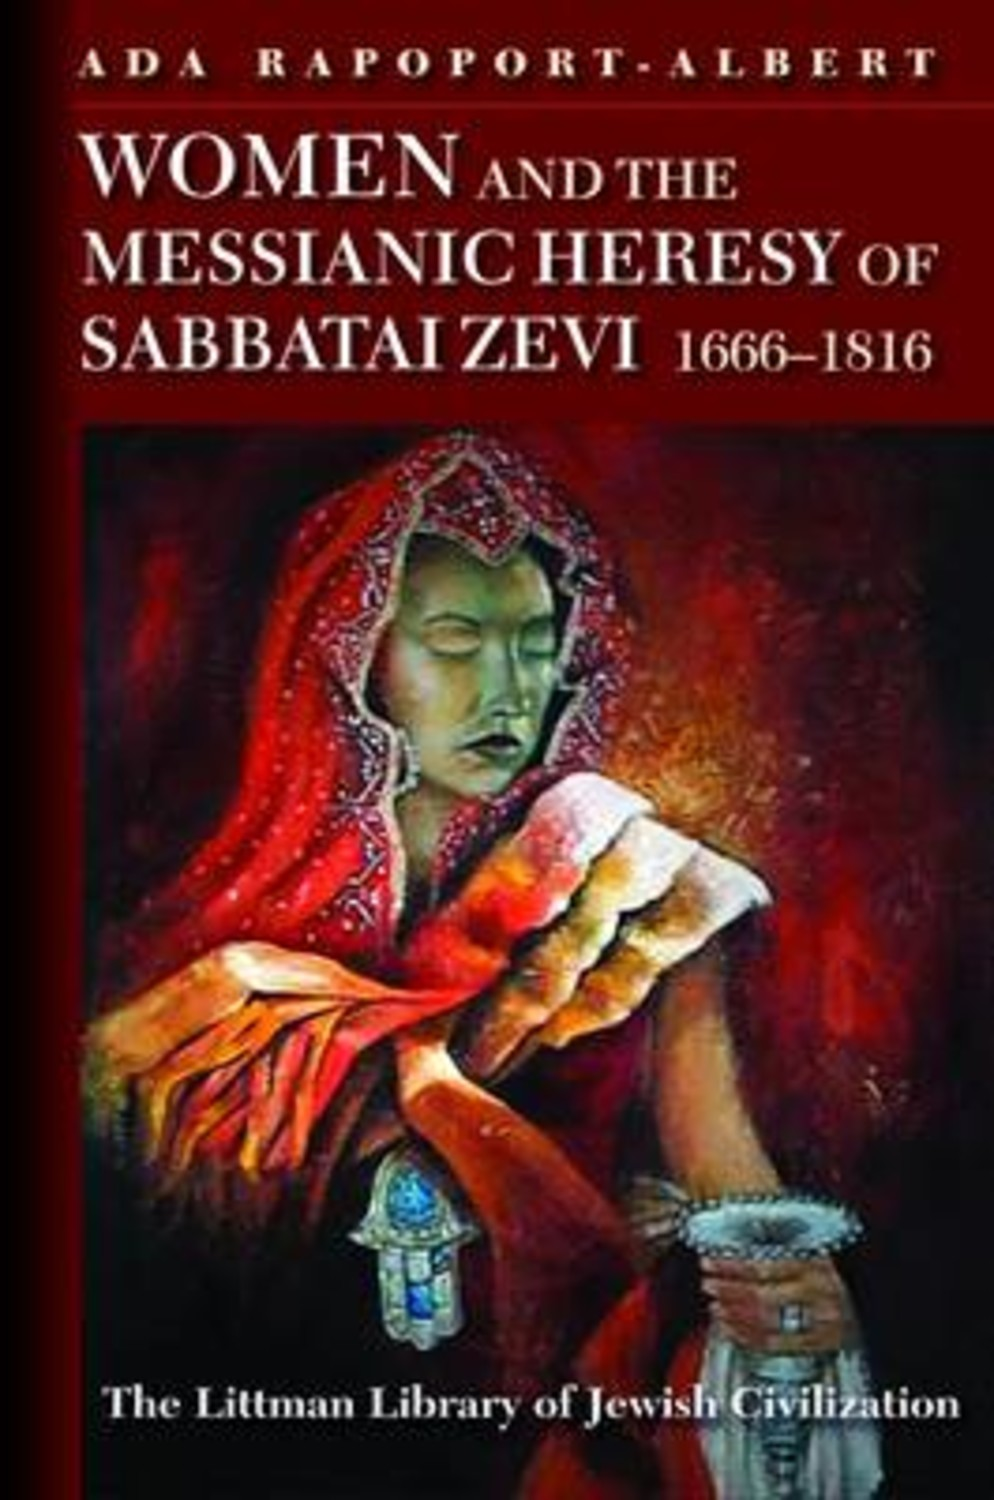 Women and the Messianic Heresy of Sabbatai Zevi, 1666-1816